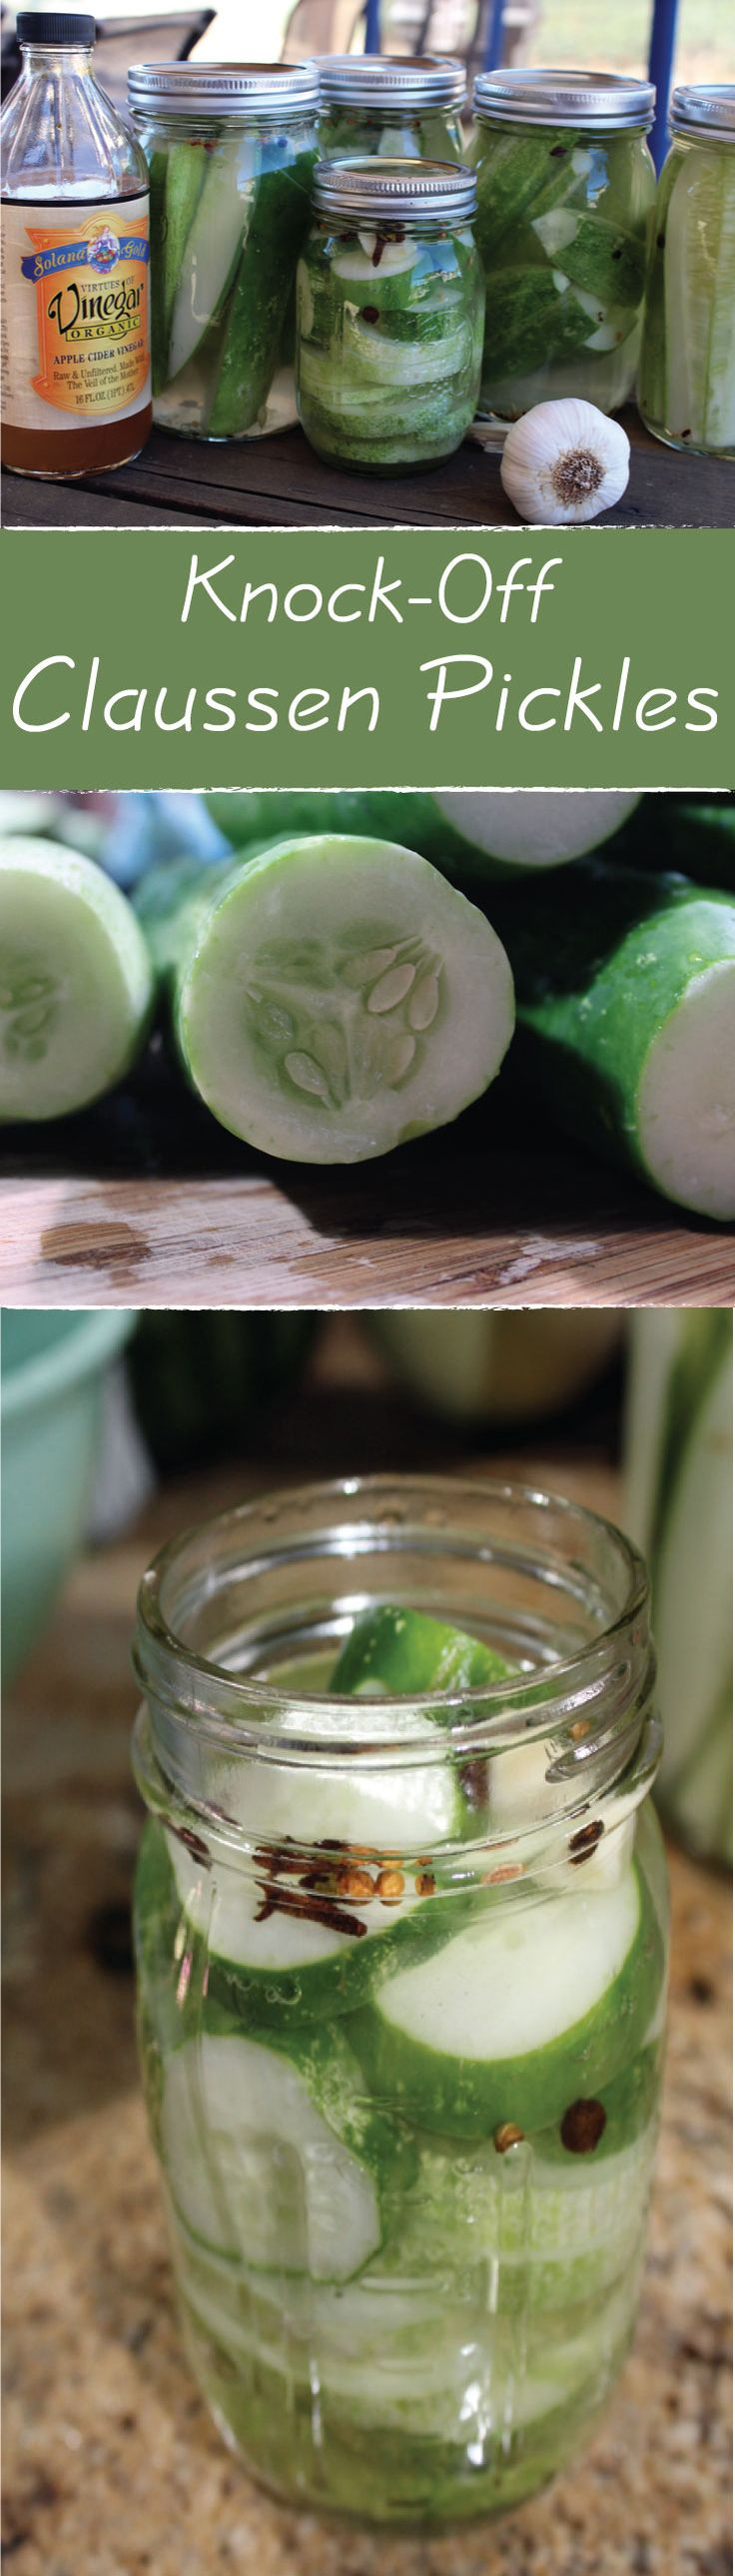 Are you a pickle fan? Well….I am too! Every summer I plant too many pickling cucumbers and quickly become overrun by them.  This is my first attempt at these super simple knock-off Claussen-style dill pickles. And when I say super-simple…I mean it!!!